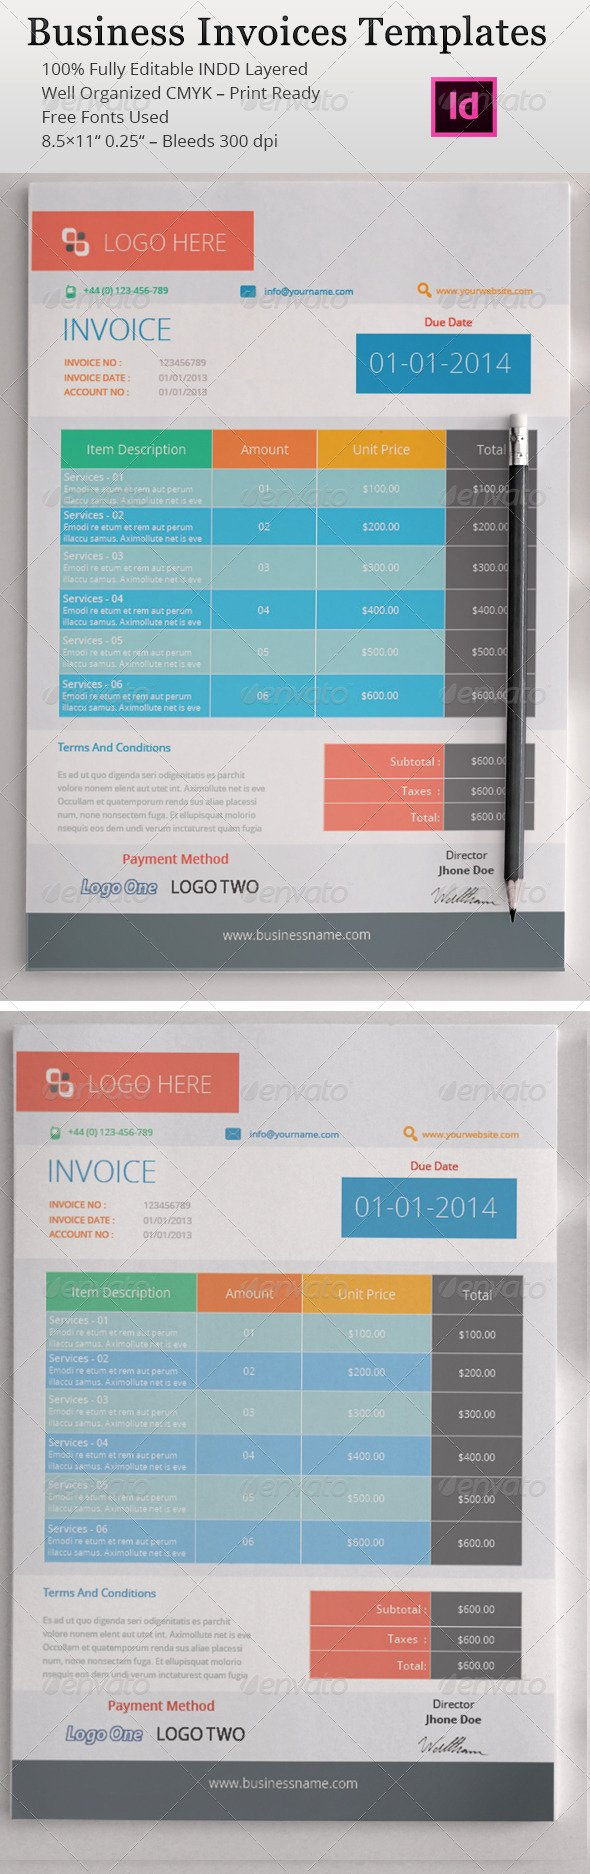 Free Indesign Invoice Template Inspirational Indesign Templates Invoices Dondrup